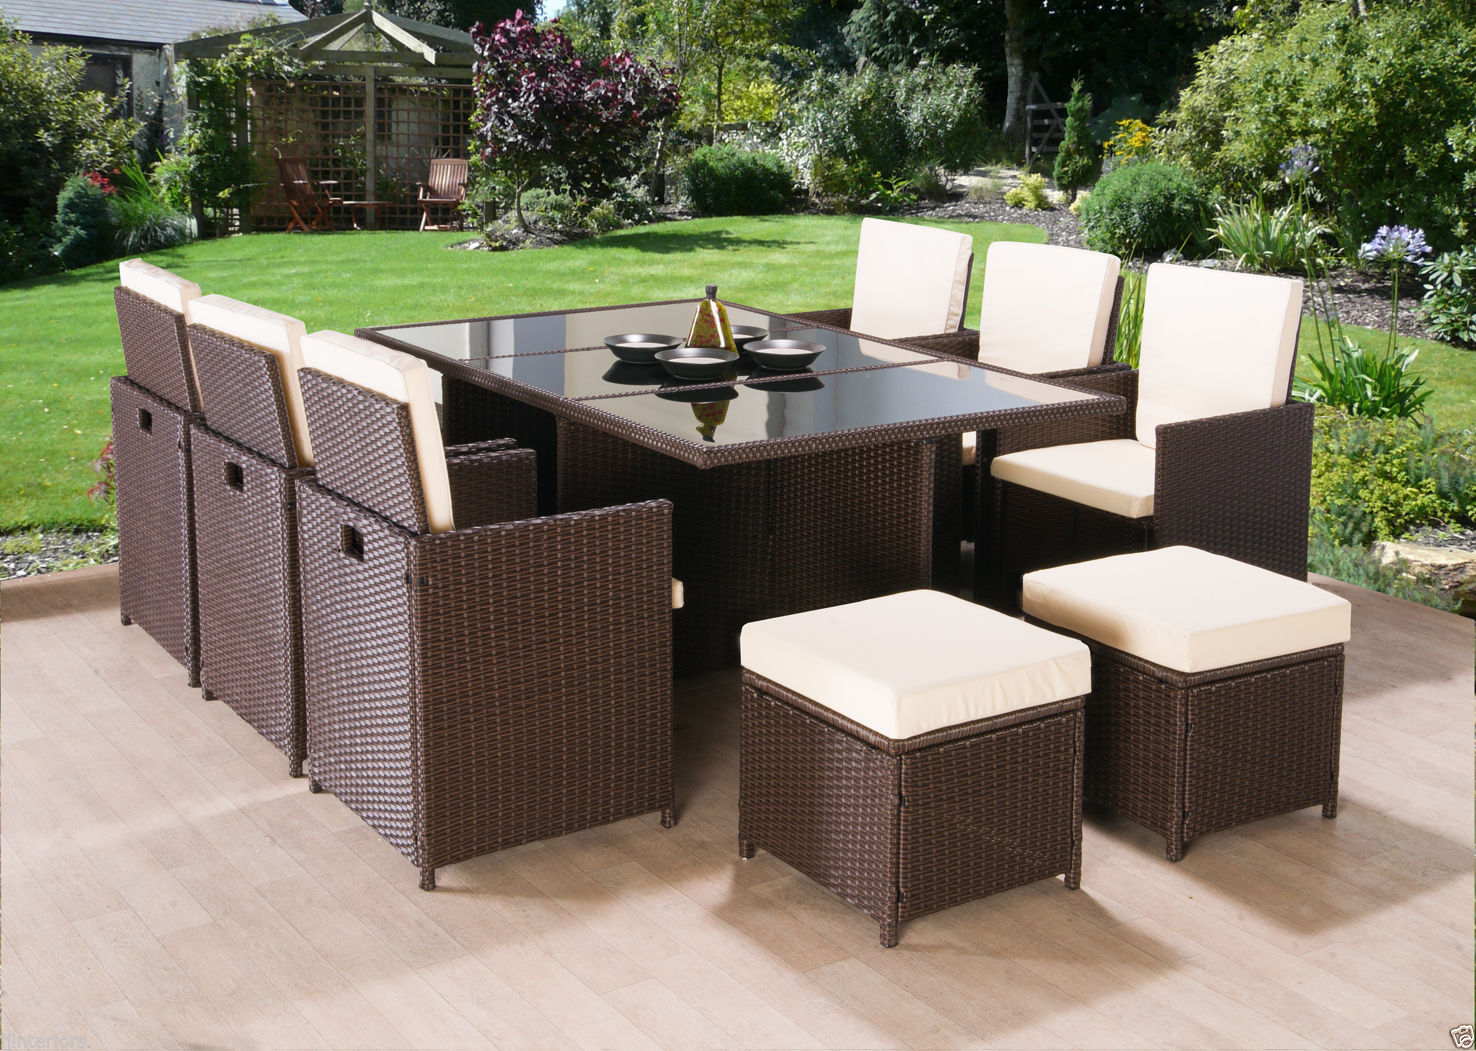 Cube Rattan Garden Furniture Set Chairs Sofa Table Outdoor Patio Wicke Furnico Living